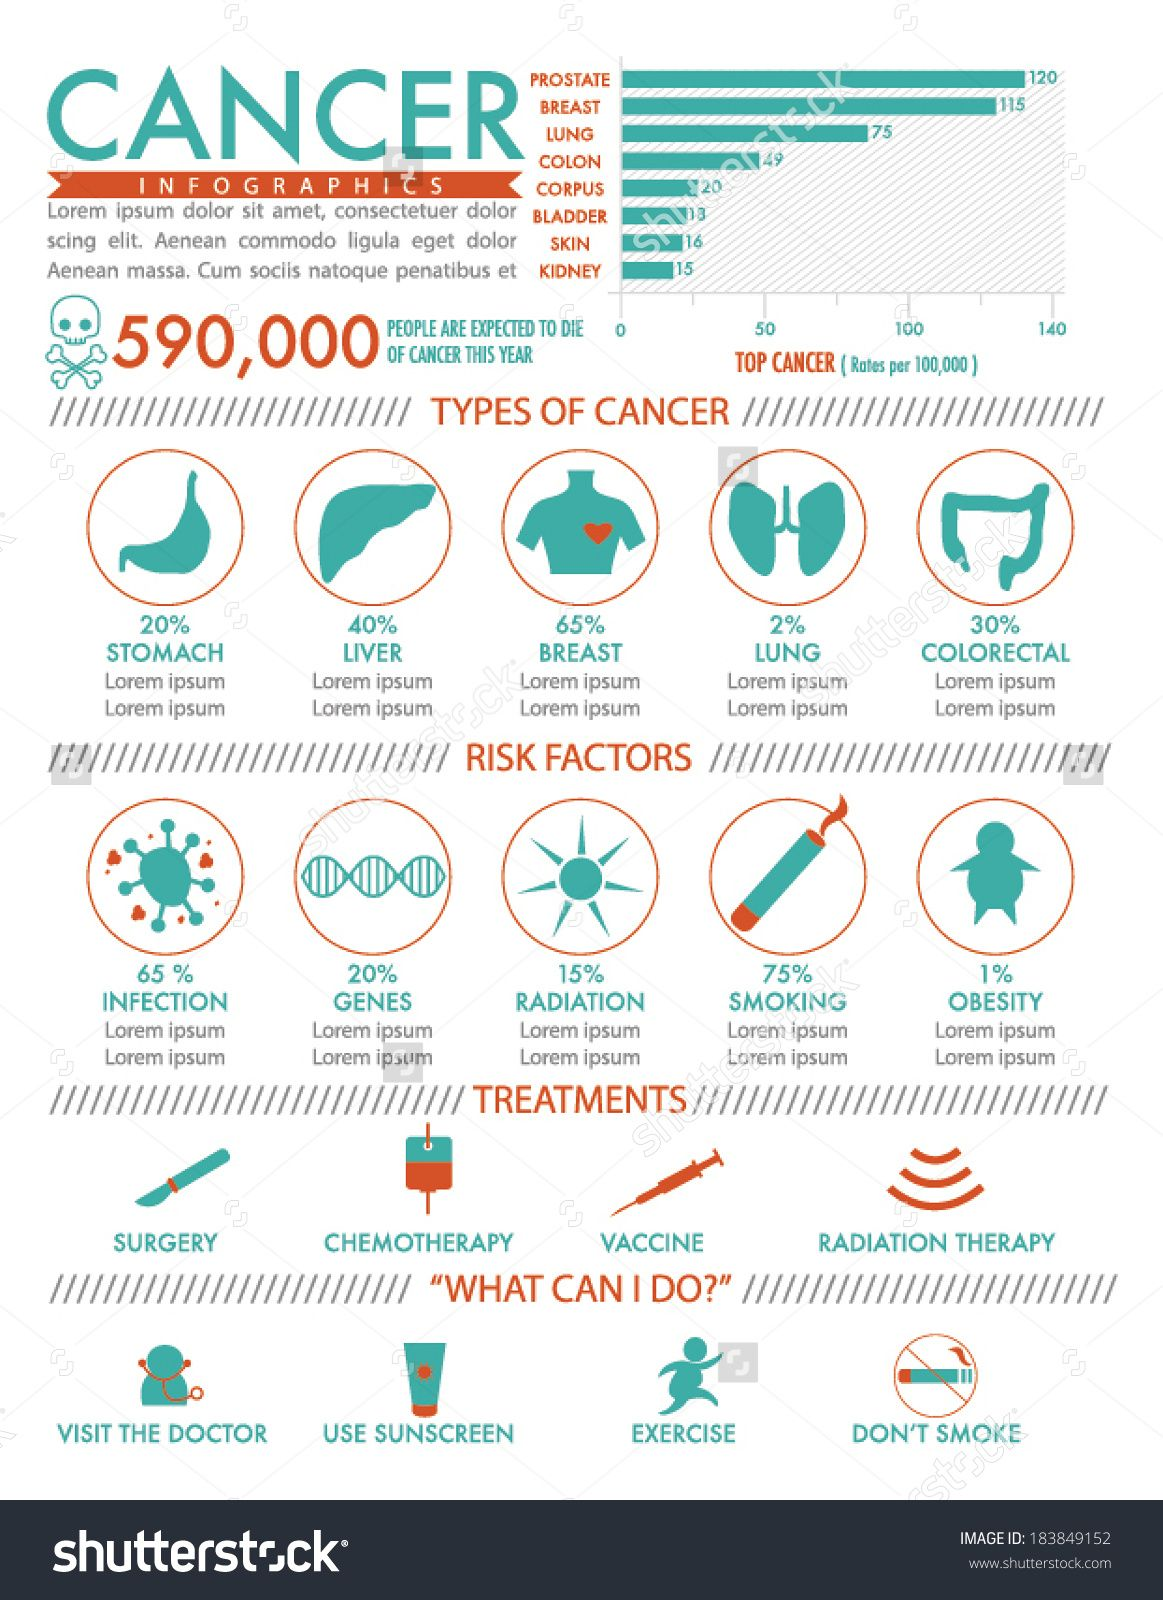 Diagnosis and treatment of cancer in children (INFOGRAFIKA)